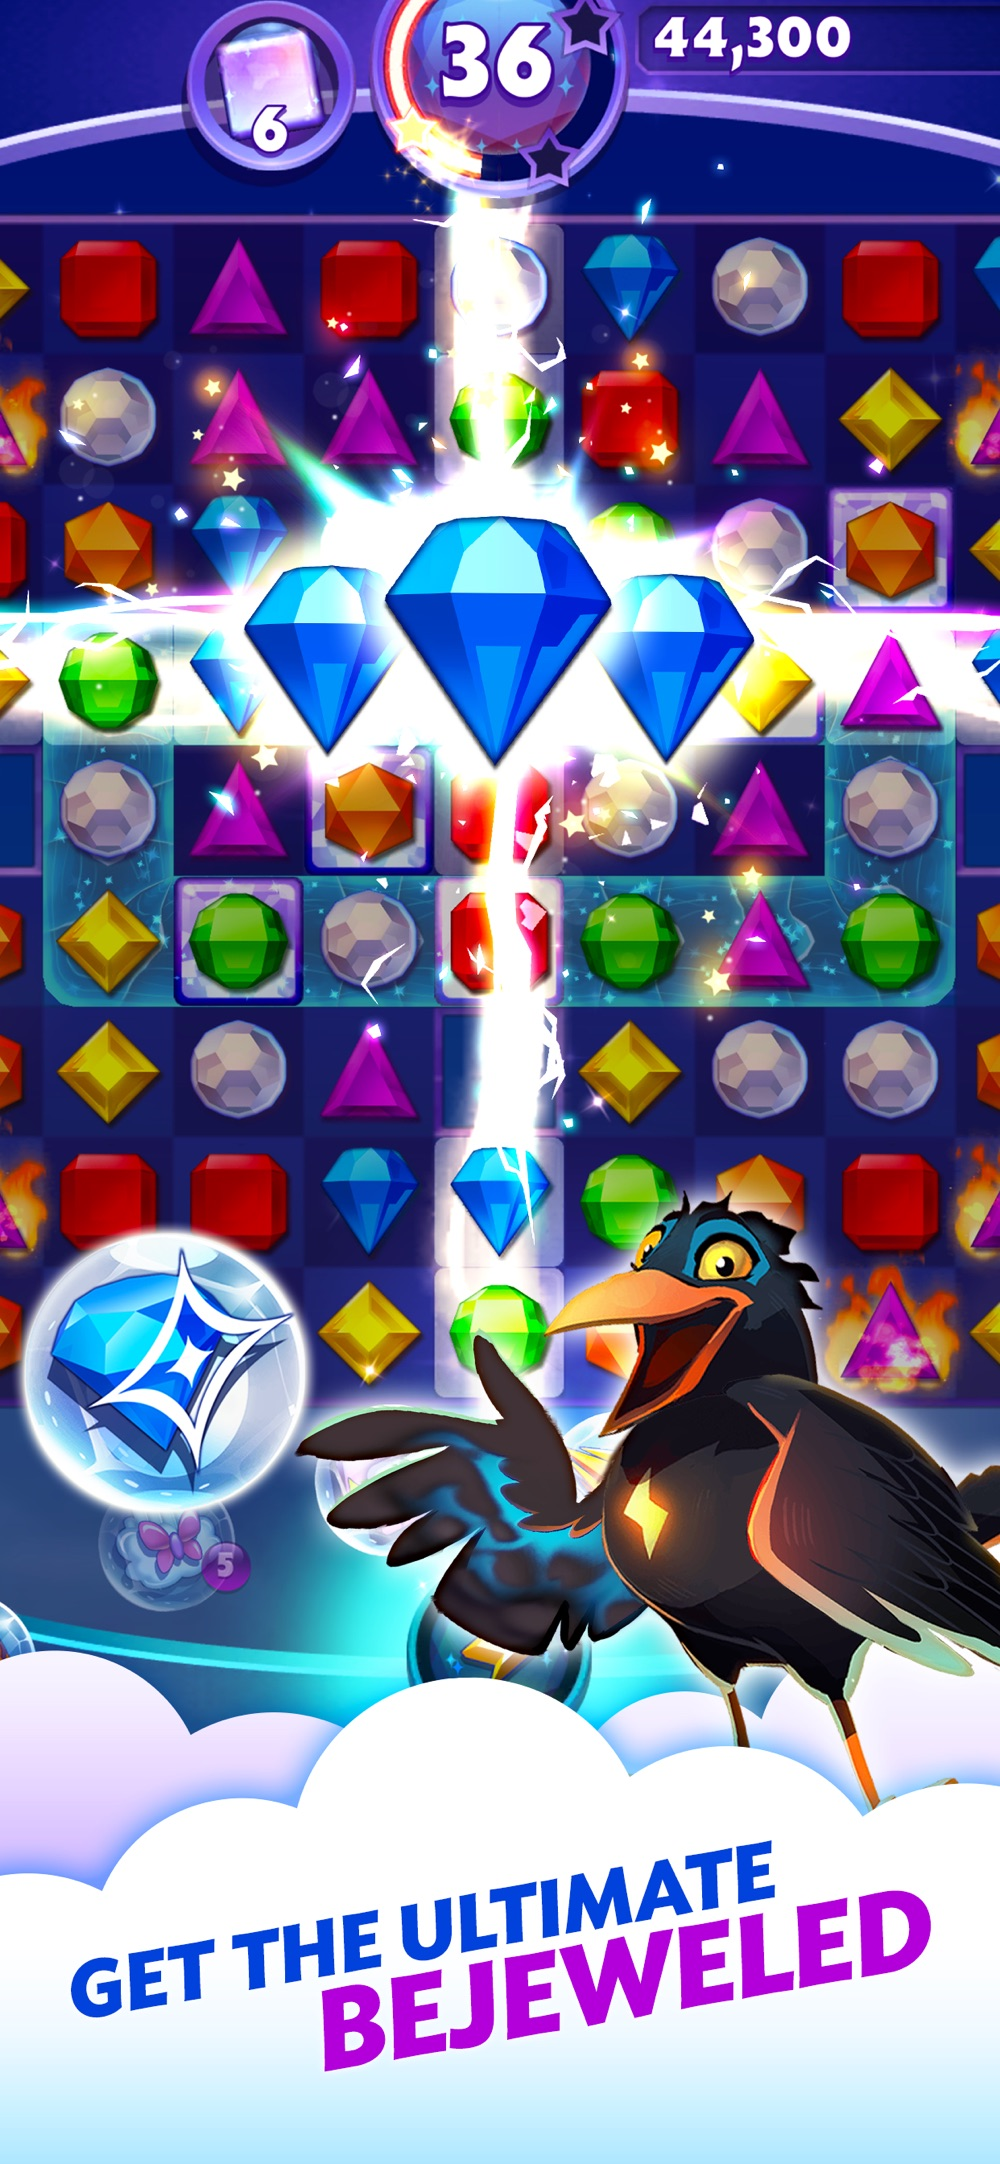 Hack tool for Bejeweled Stars